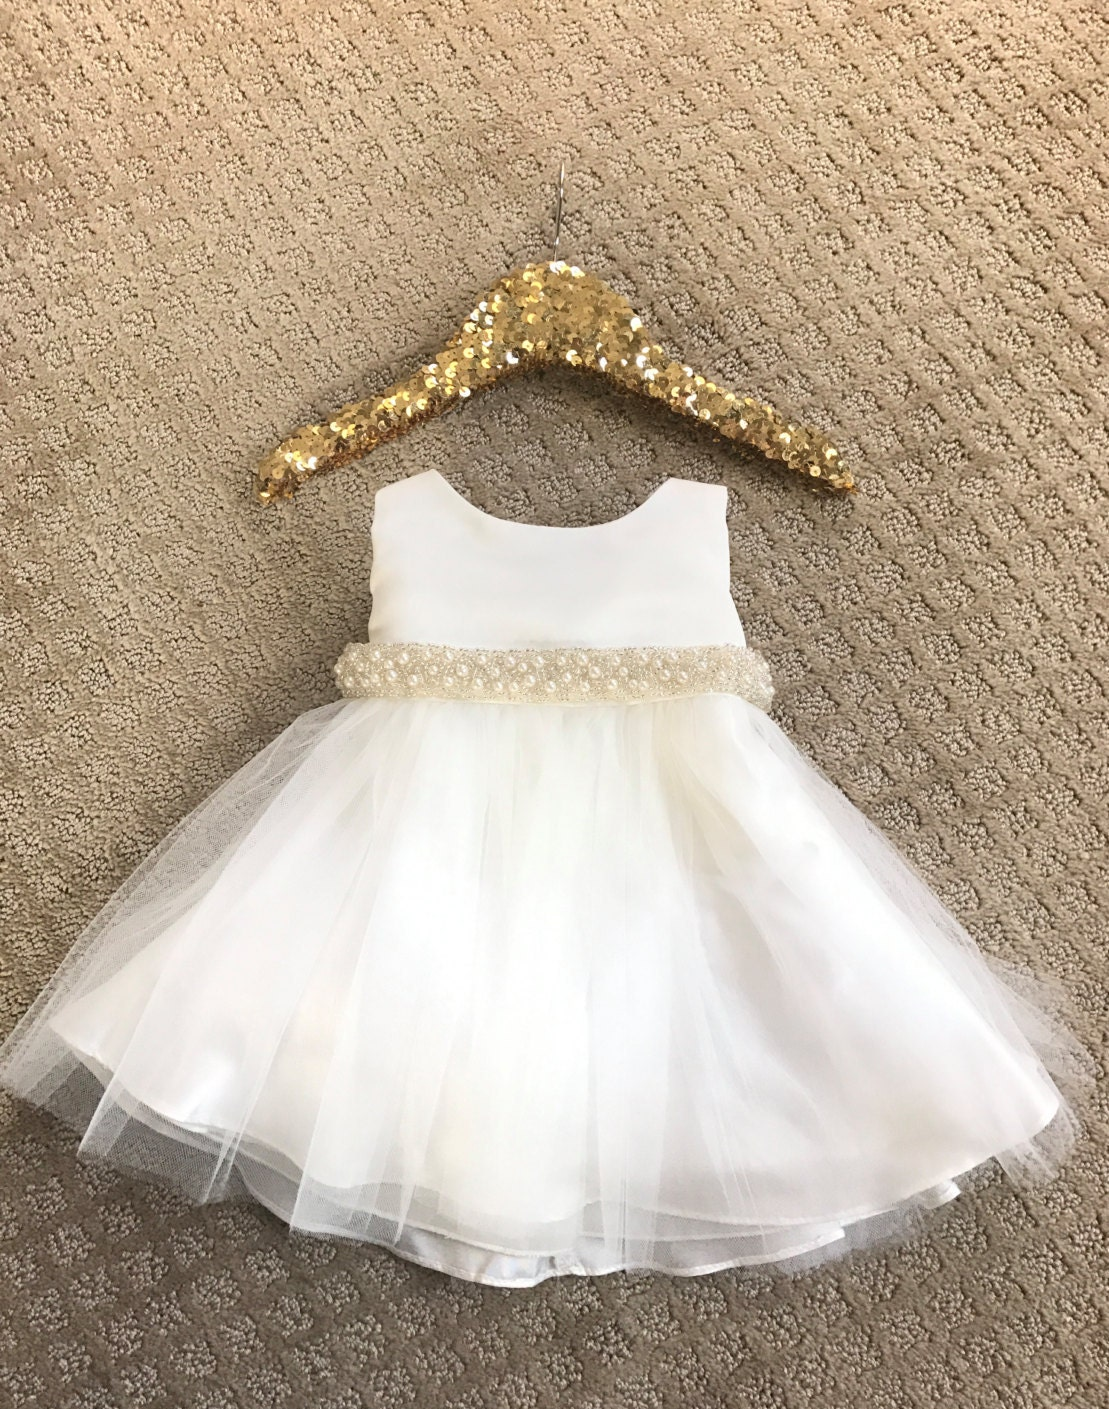 Beautiful crochet dresses for kids trendy - Baby Girl Christening Dress Baby Baptism Dress White Baby Dress White Baptism Dress Toddler Ivory Baby